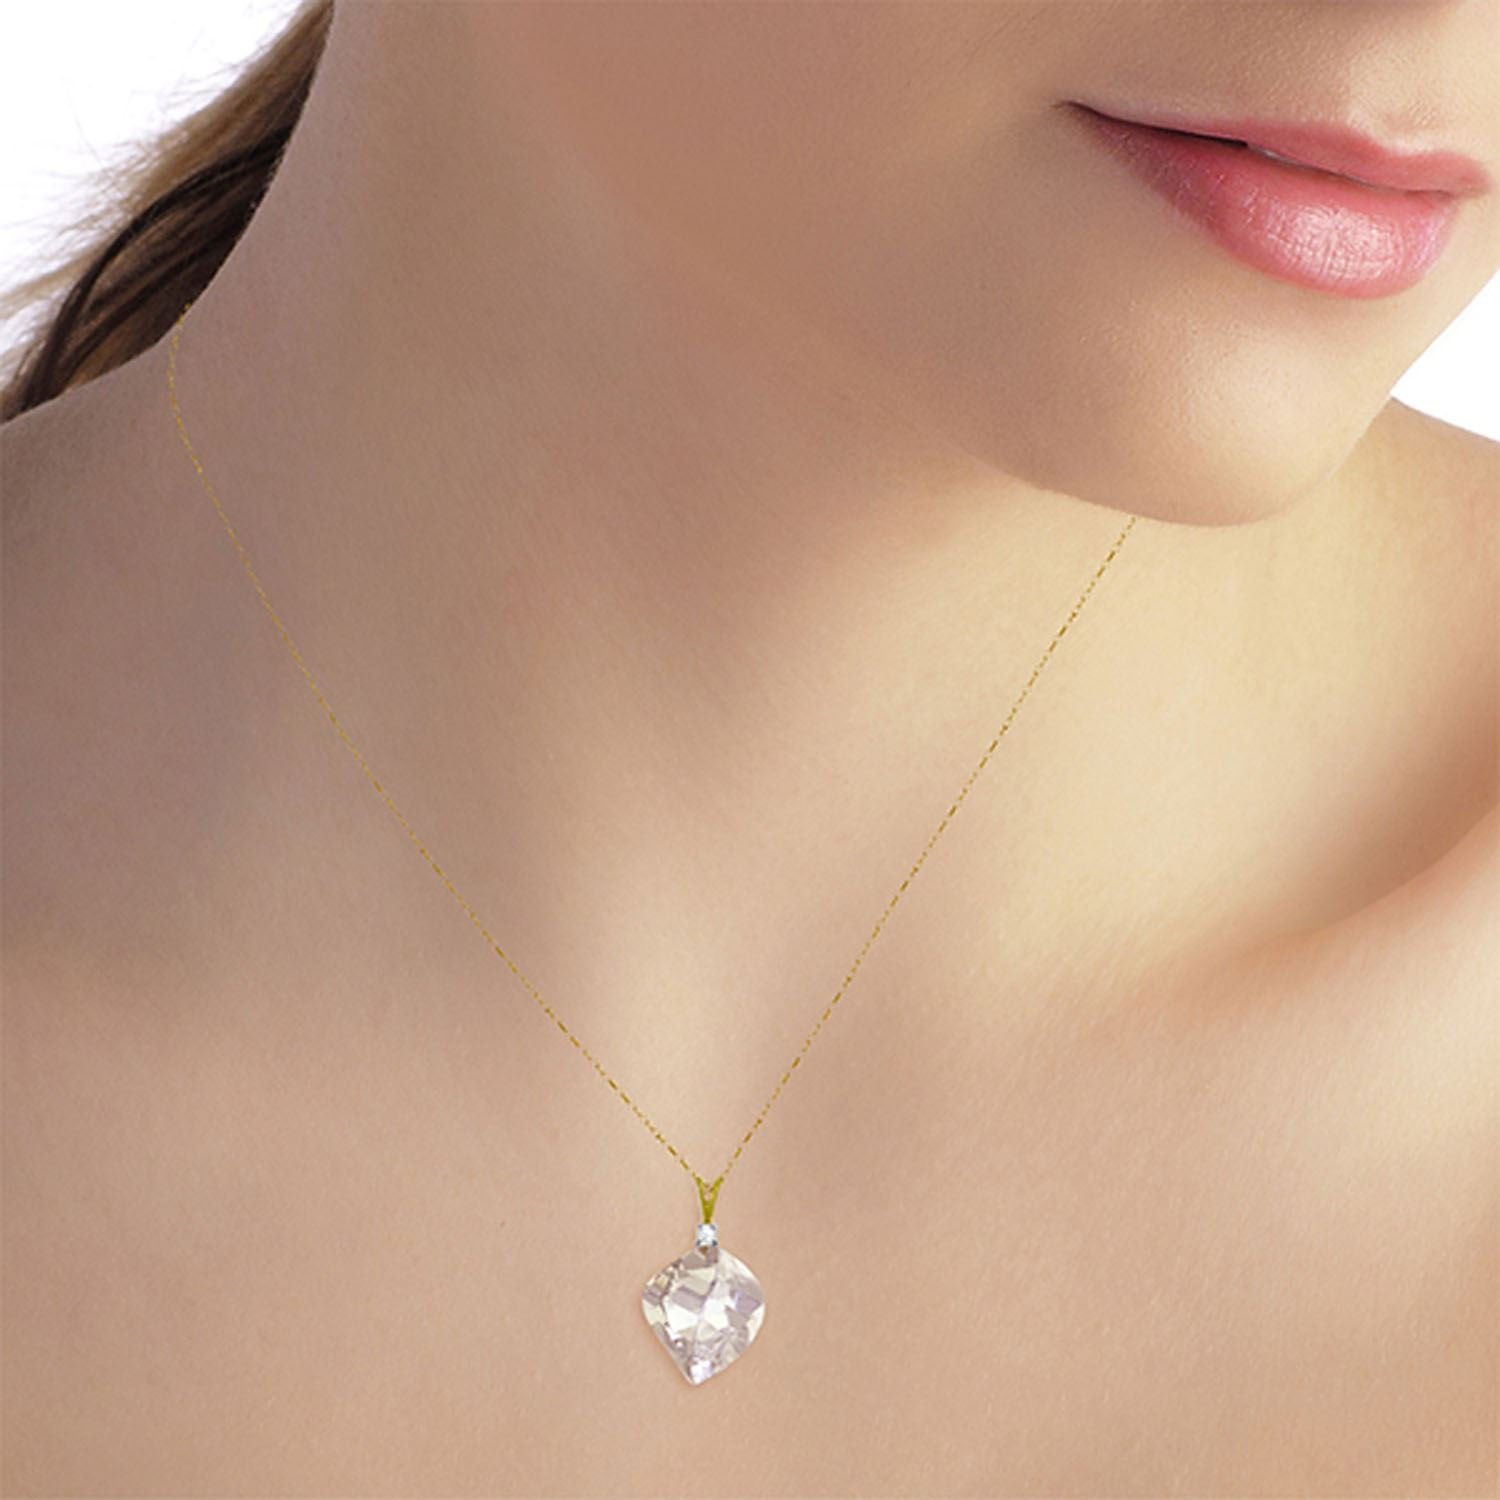 ALARRI 12.85 CTW 14K Solid Gold Pure Pleasure White Topaz Diamond Necklace with 22 Inch Chain Length